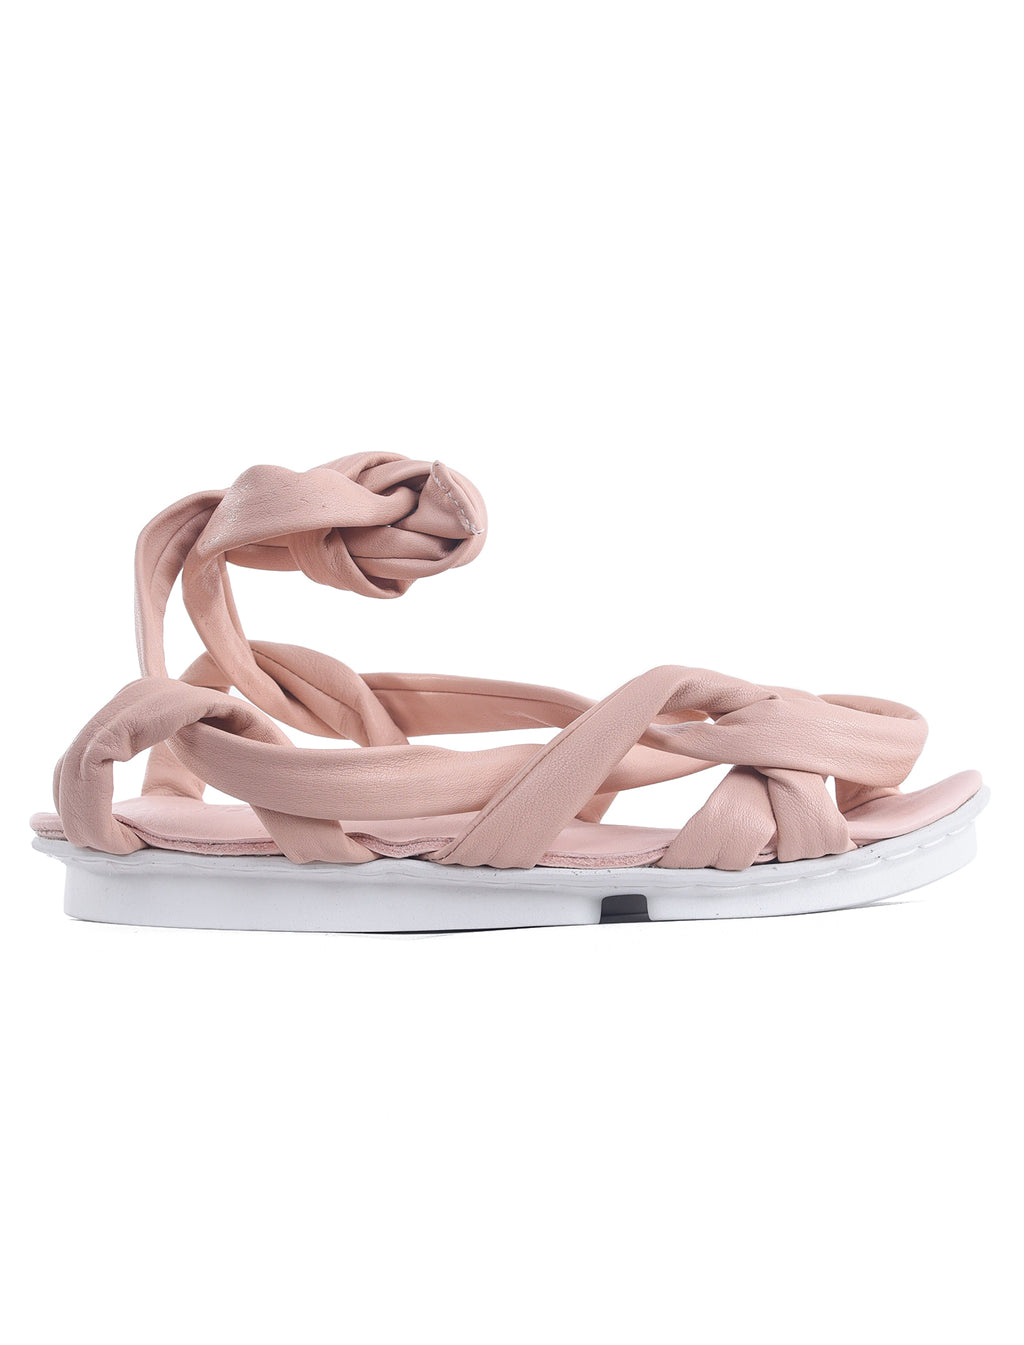 Trippen Shoes Lust Penna Sandal, Rose Waw